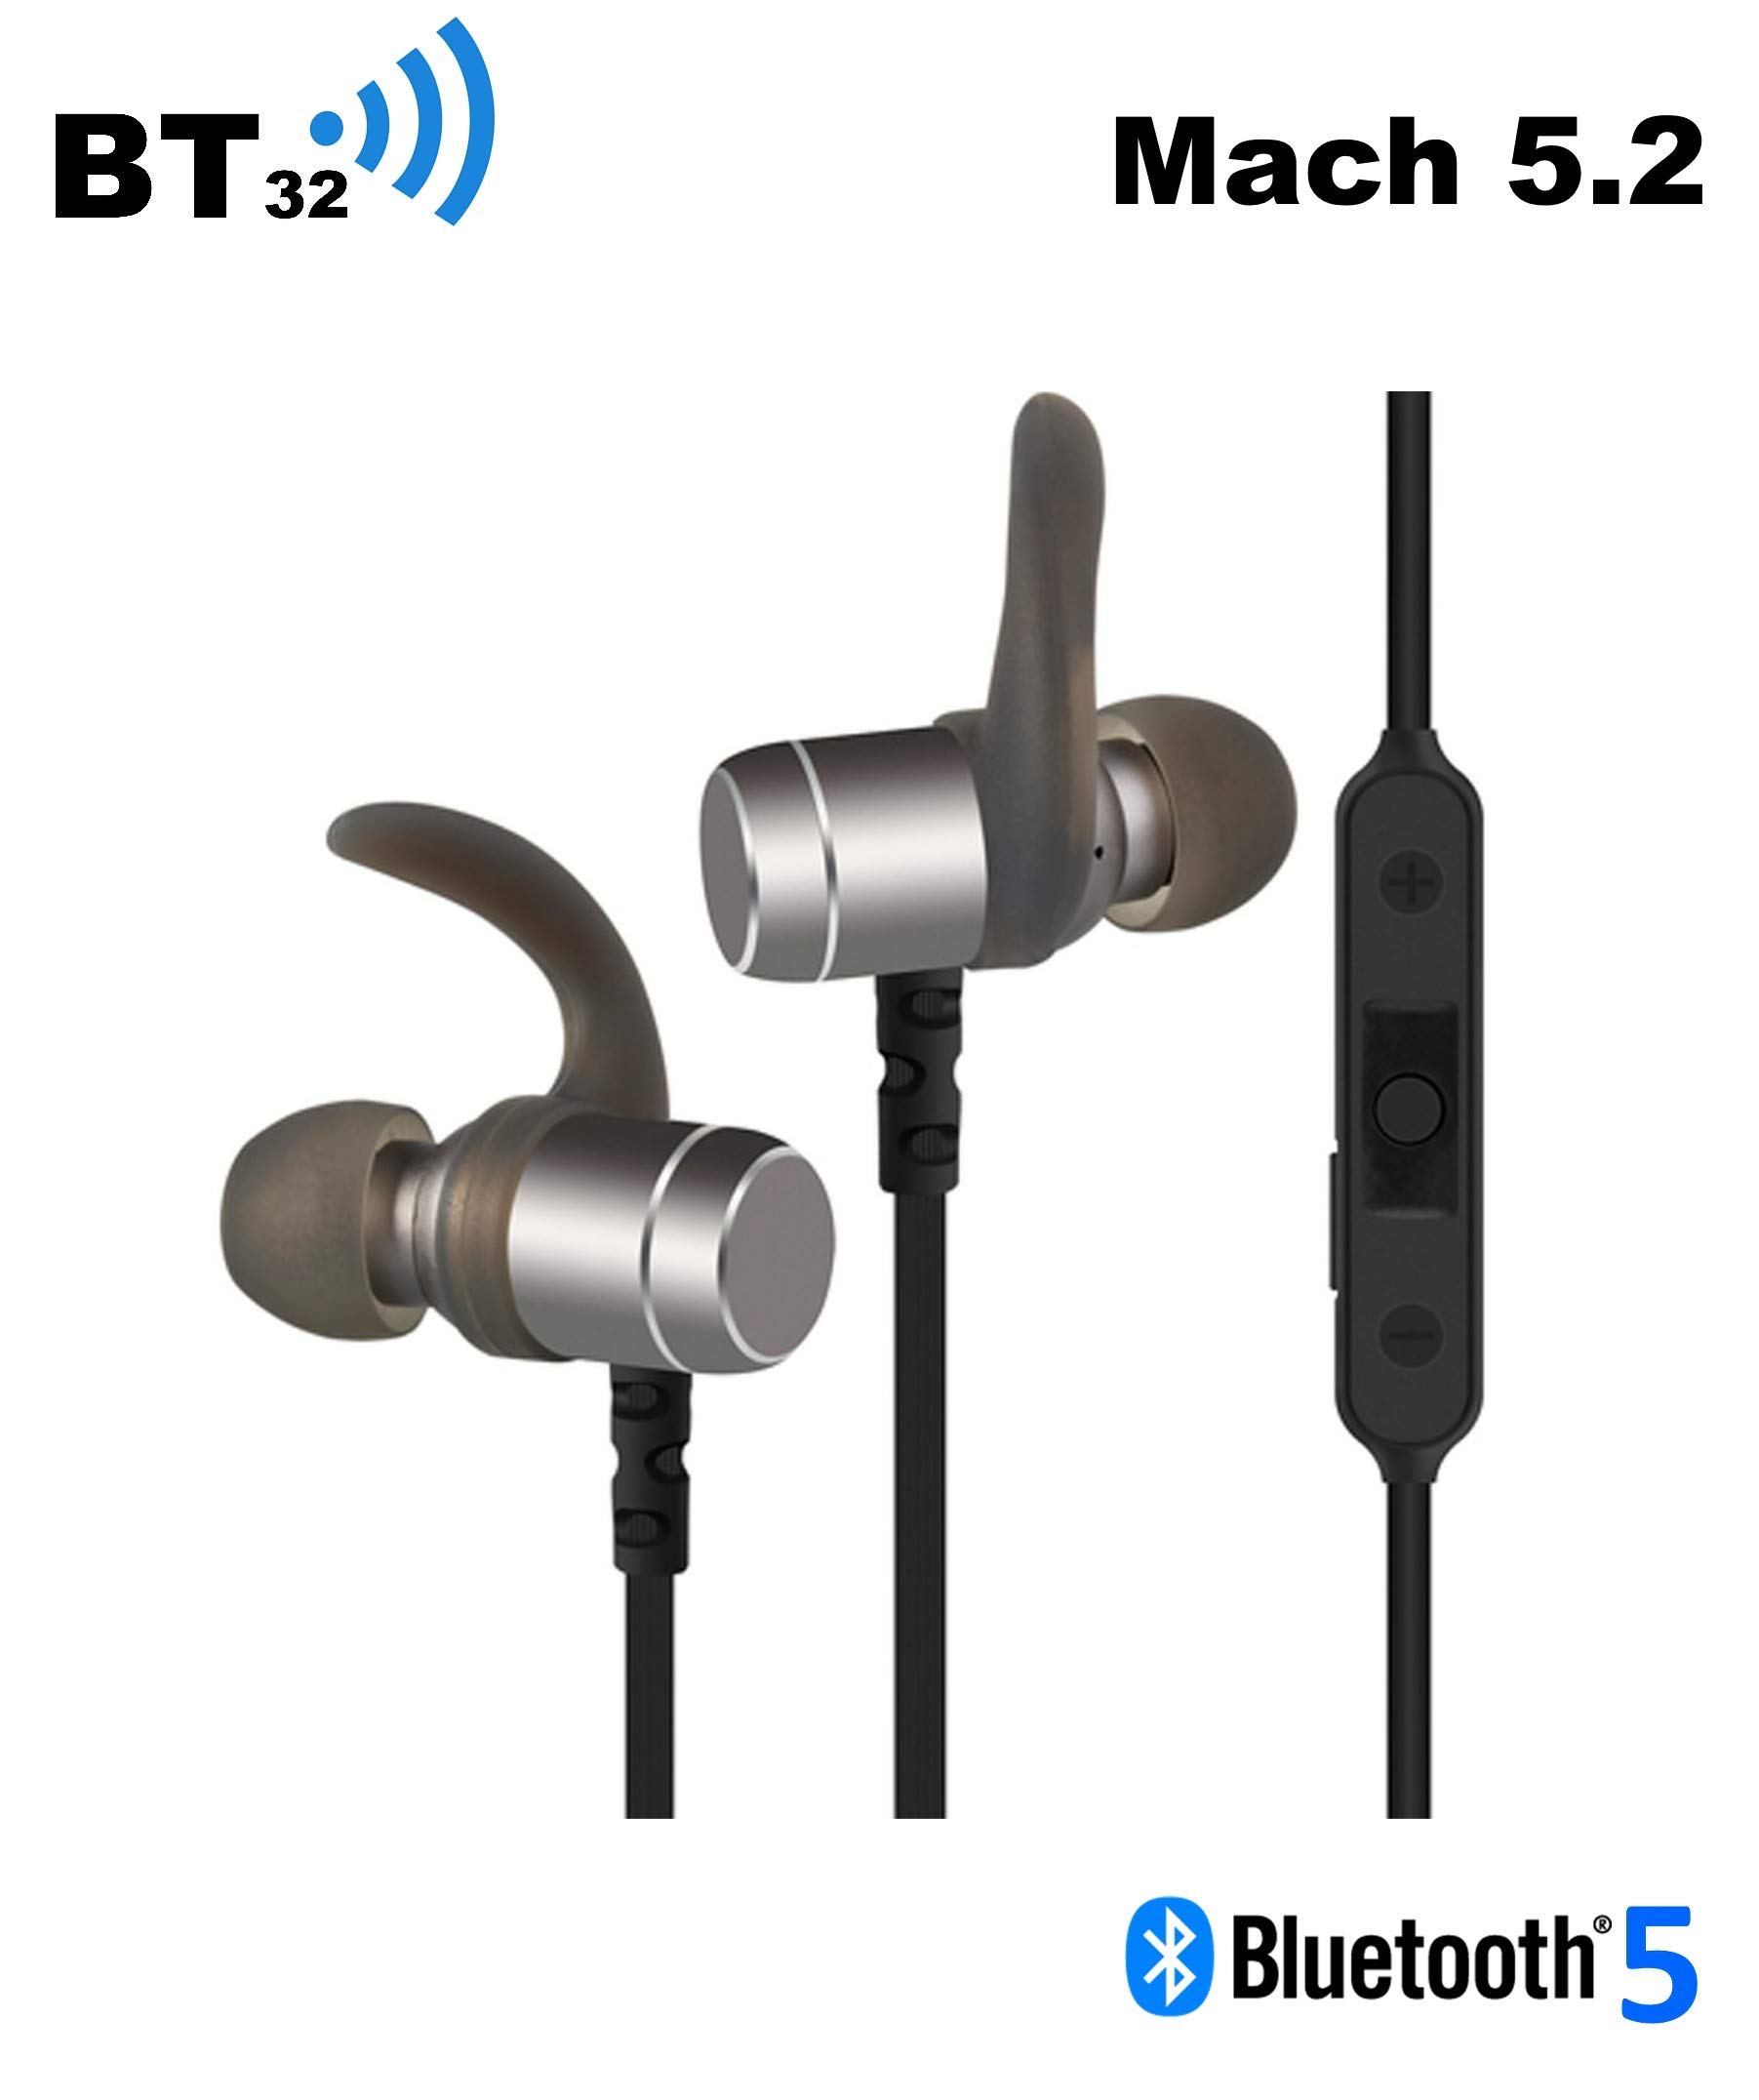 BT32 Mach 5.2 Bluetooth 5.0 Magnetic Wireless Earbuds, Sport in-Ear, Sweatproof with Built-in Charger and Mic, Super Sound Quality, 11 Hrs Playtime, Comfortable, Black by BT32